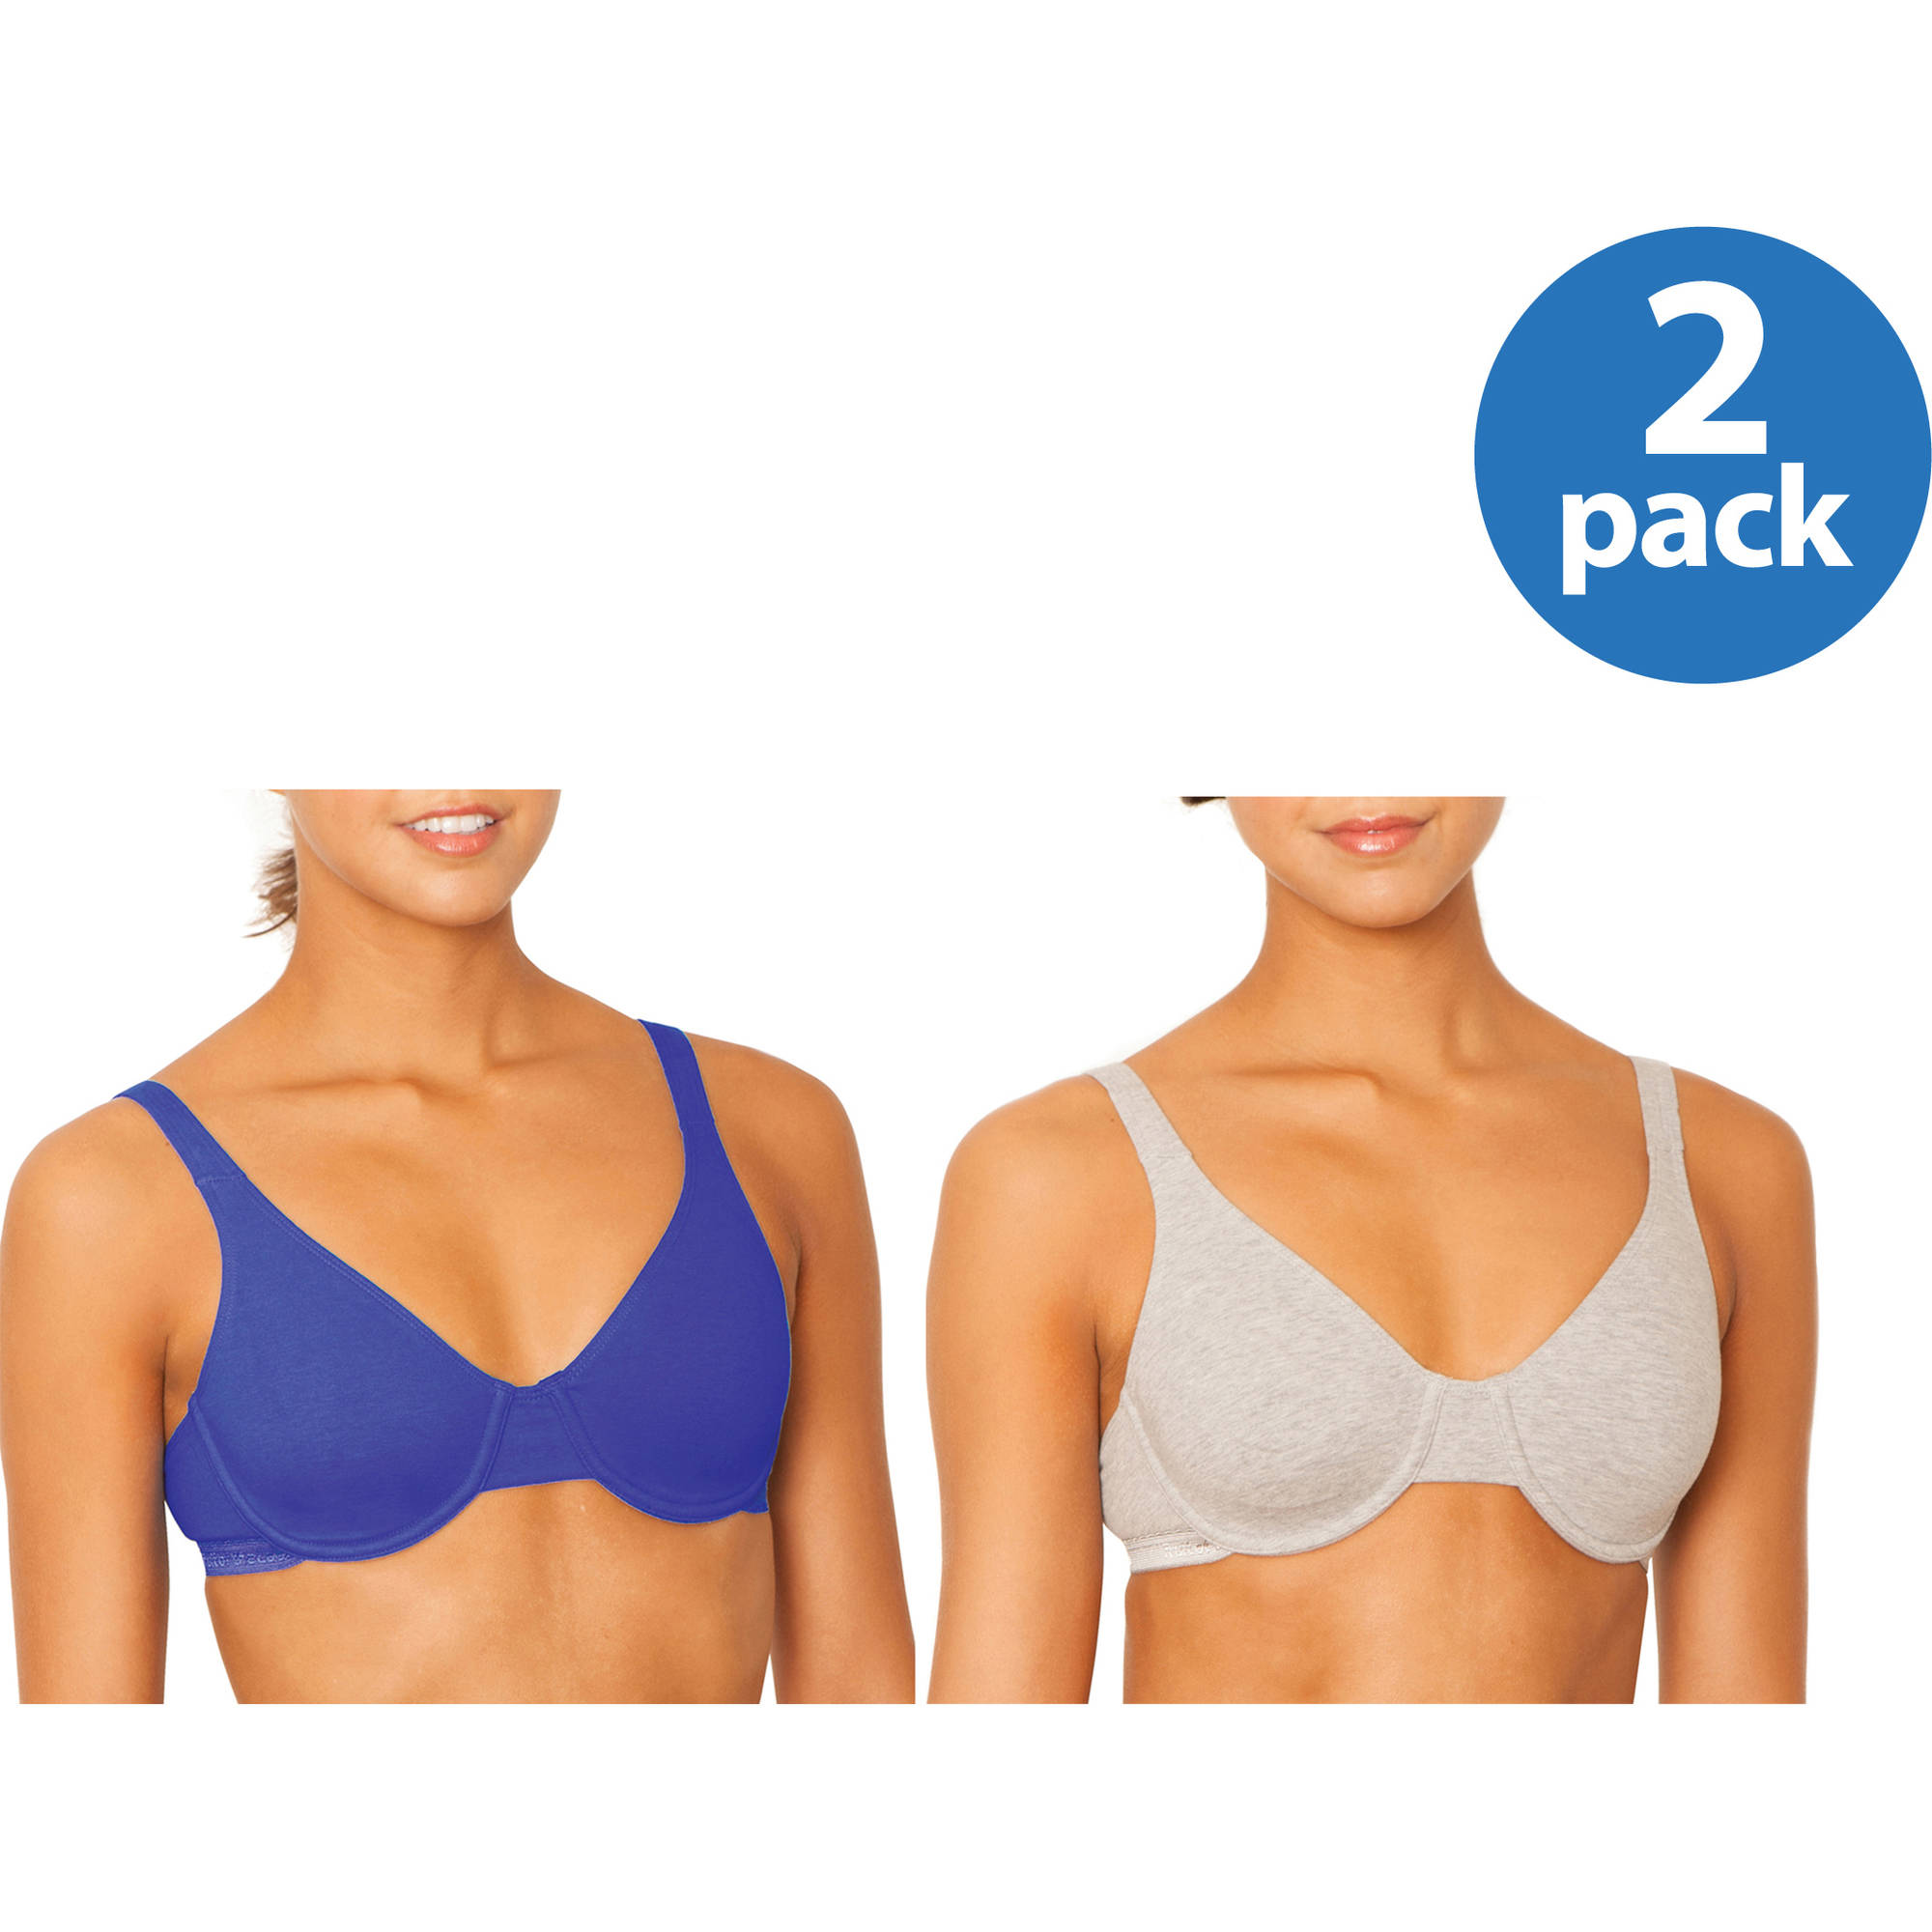 Fruit of the Loom Women's Cotton Stretch Extreme Comfort Bra, Style 9292PR, 2-Pack